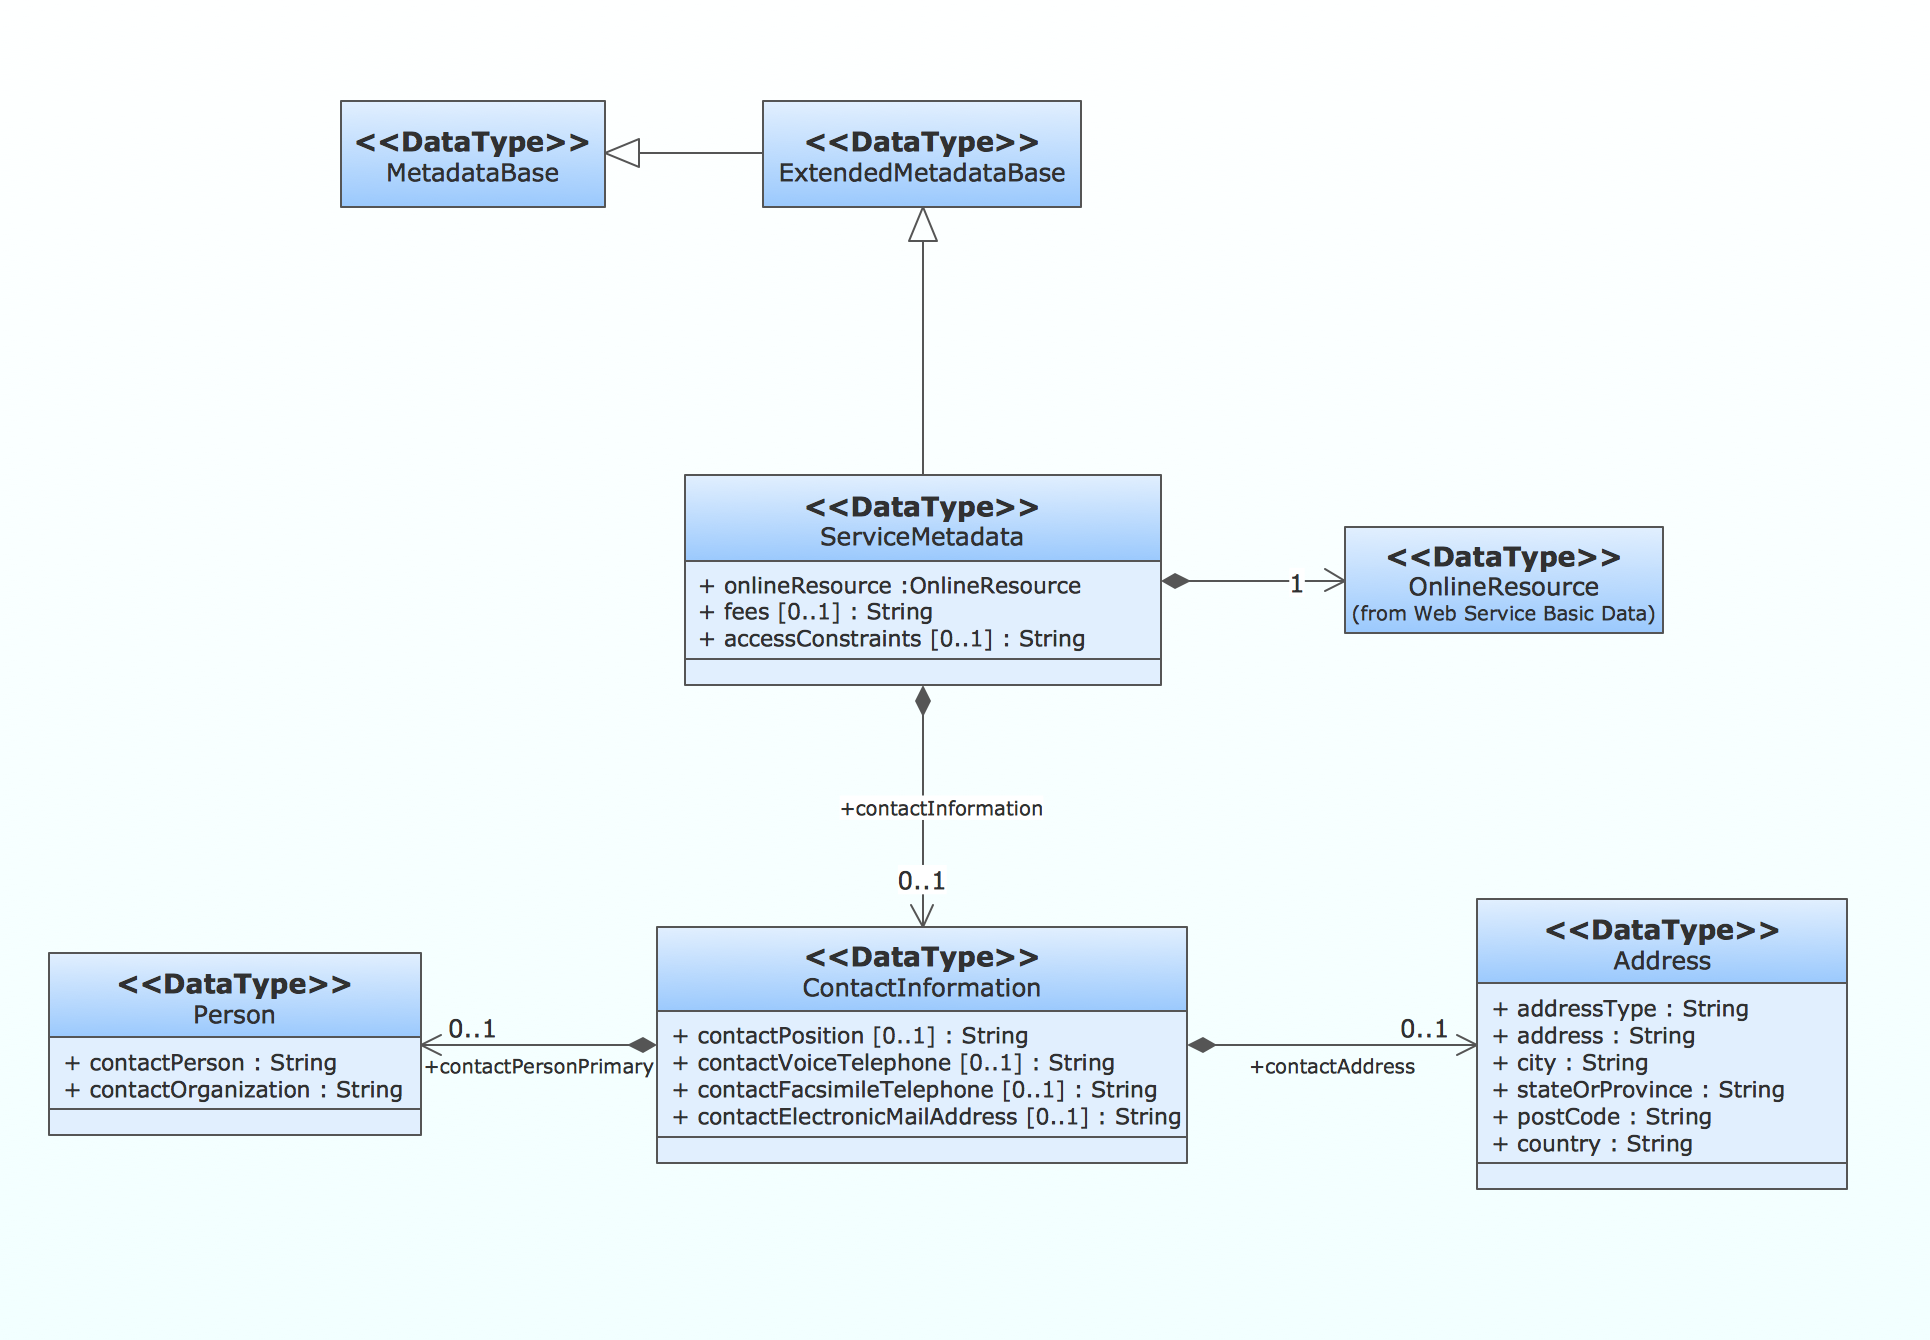 UML Class Diagram - Metadata Information Model